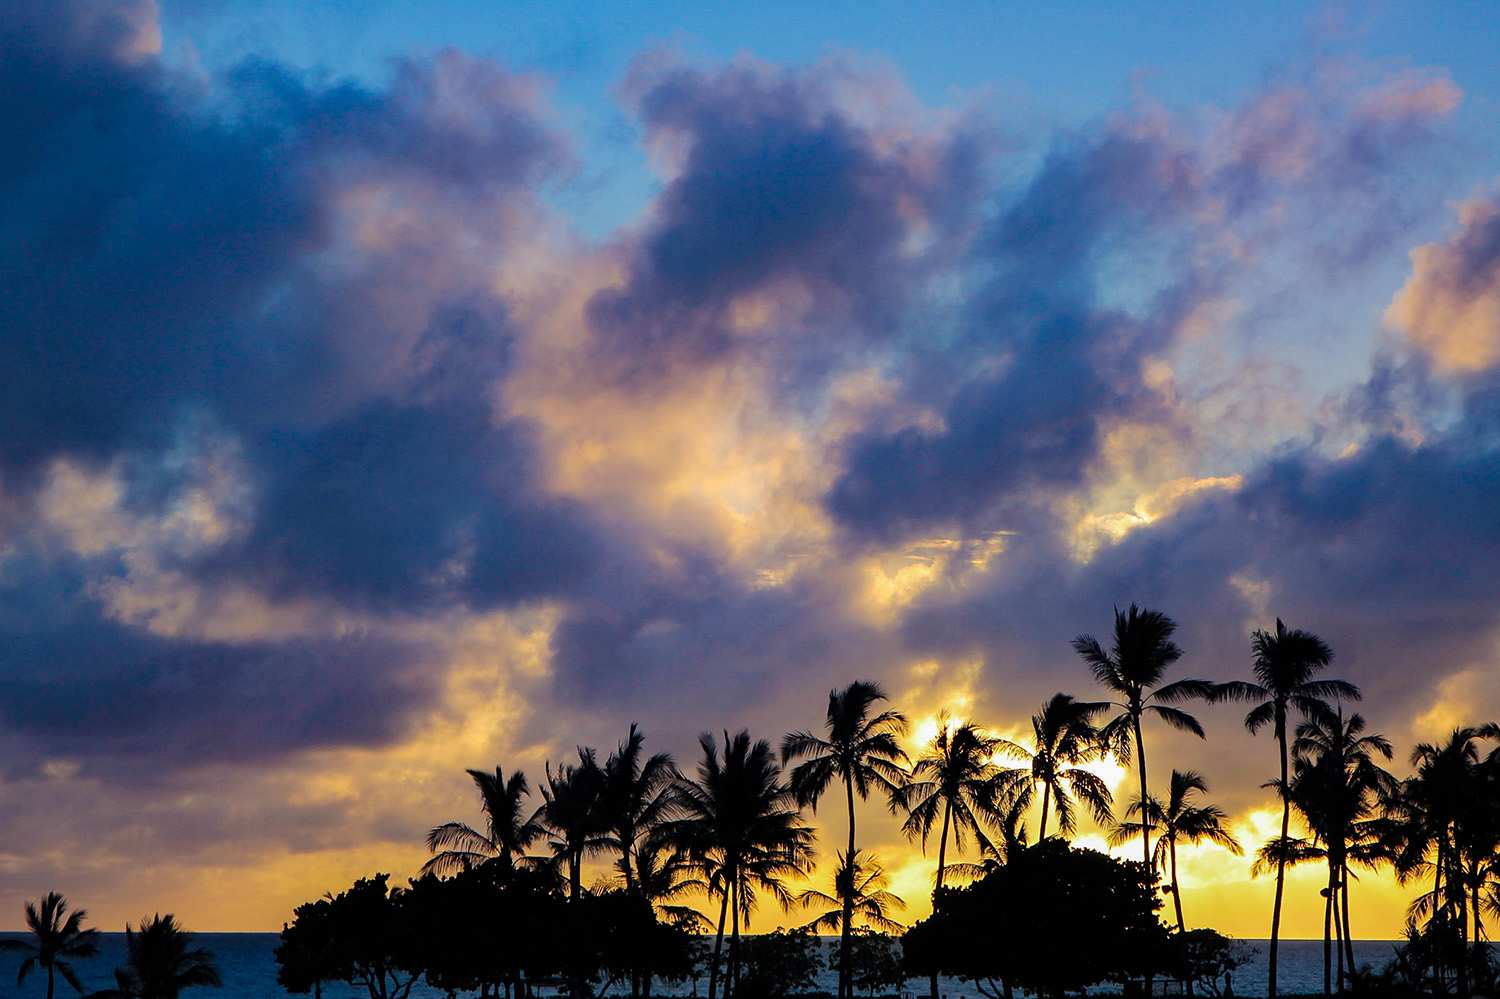 How stunning is this sunset from the beach at Disney Aulani?